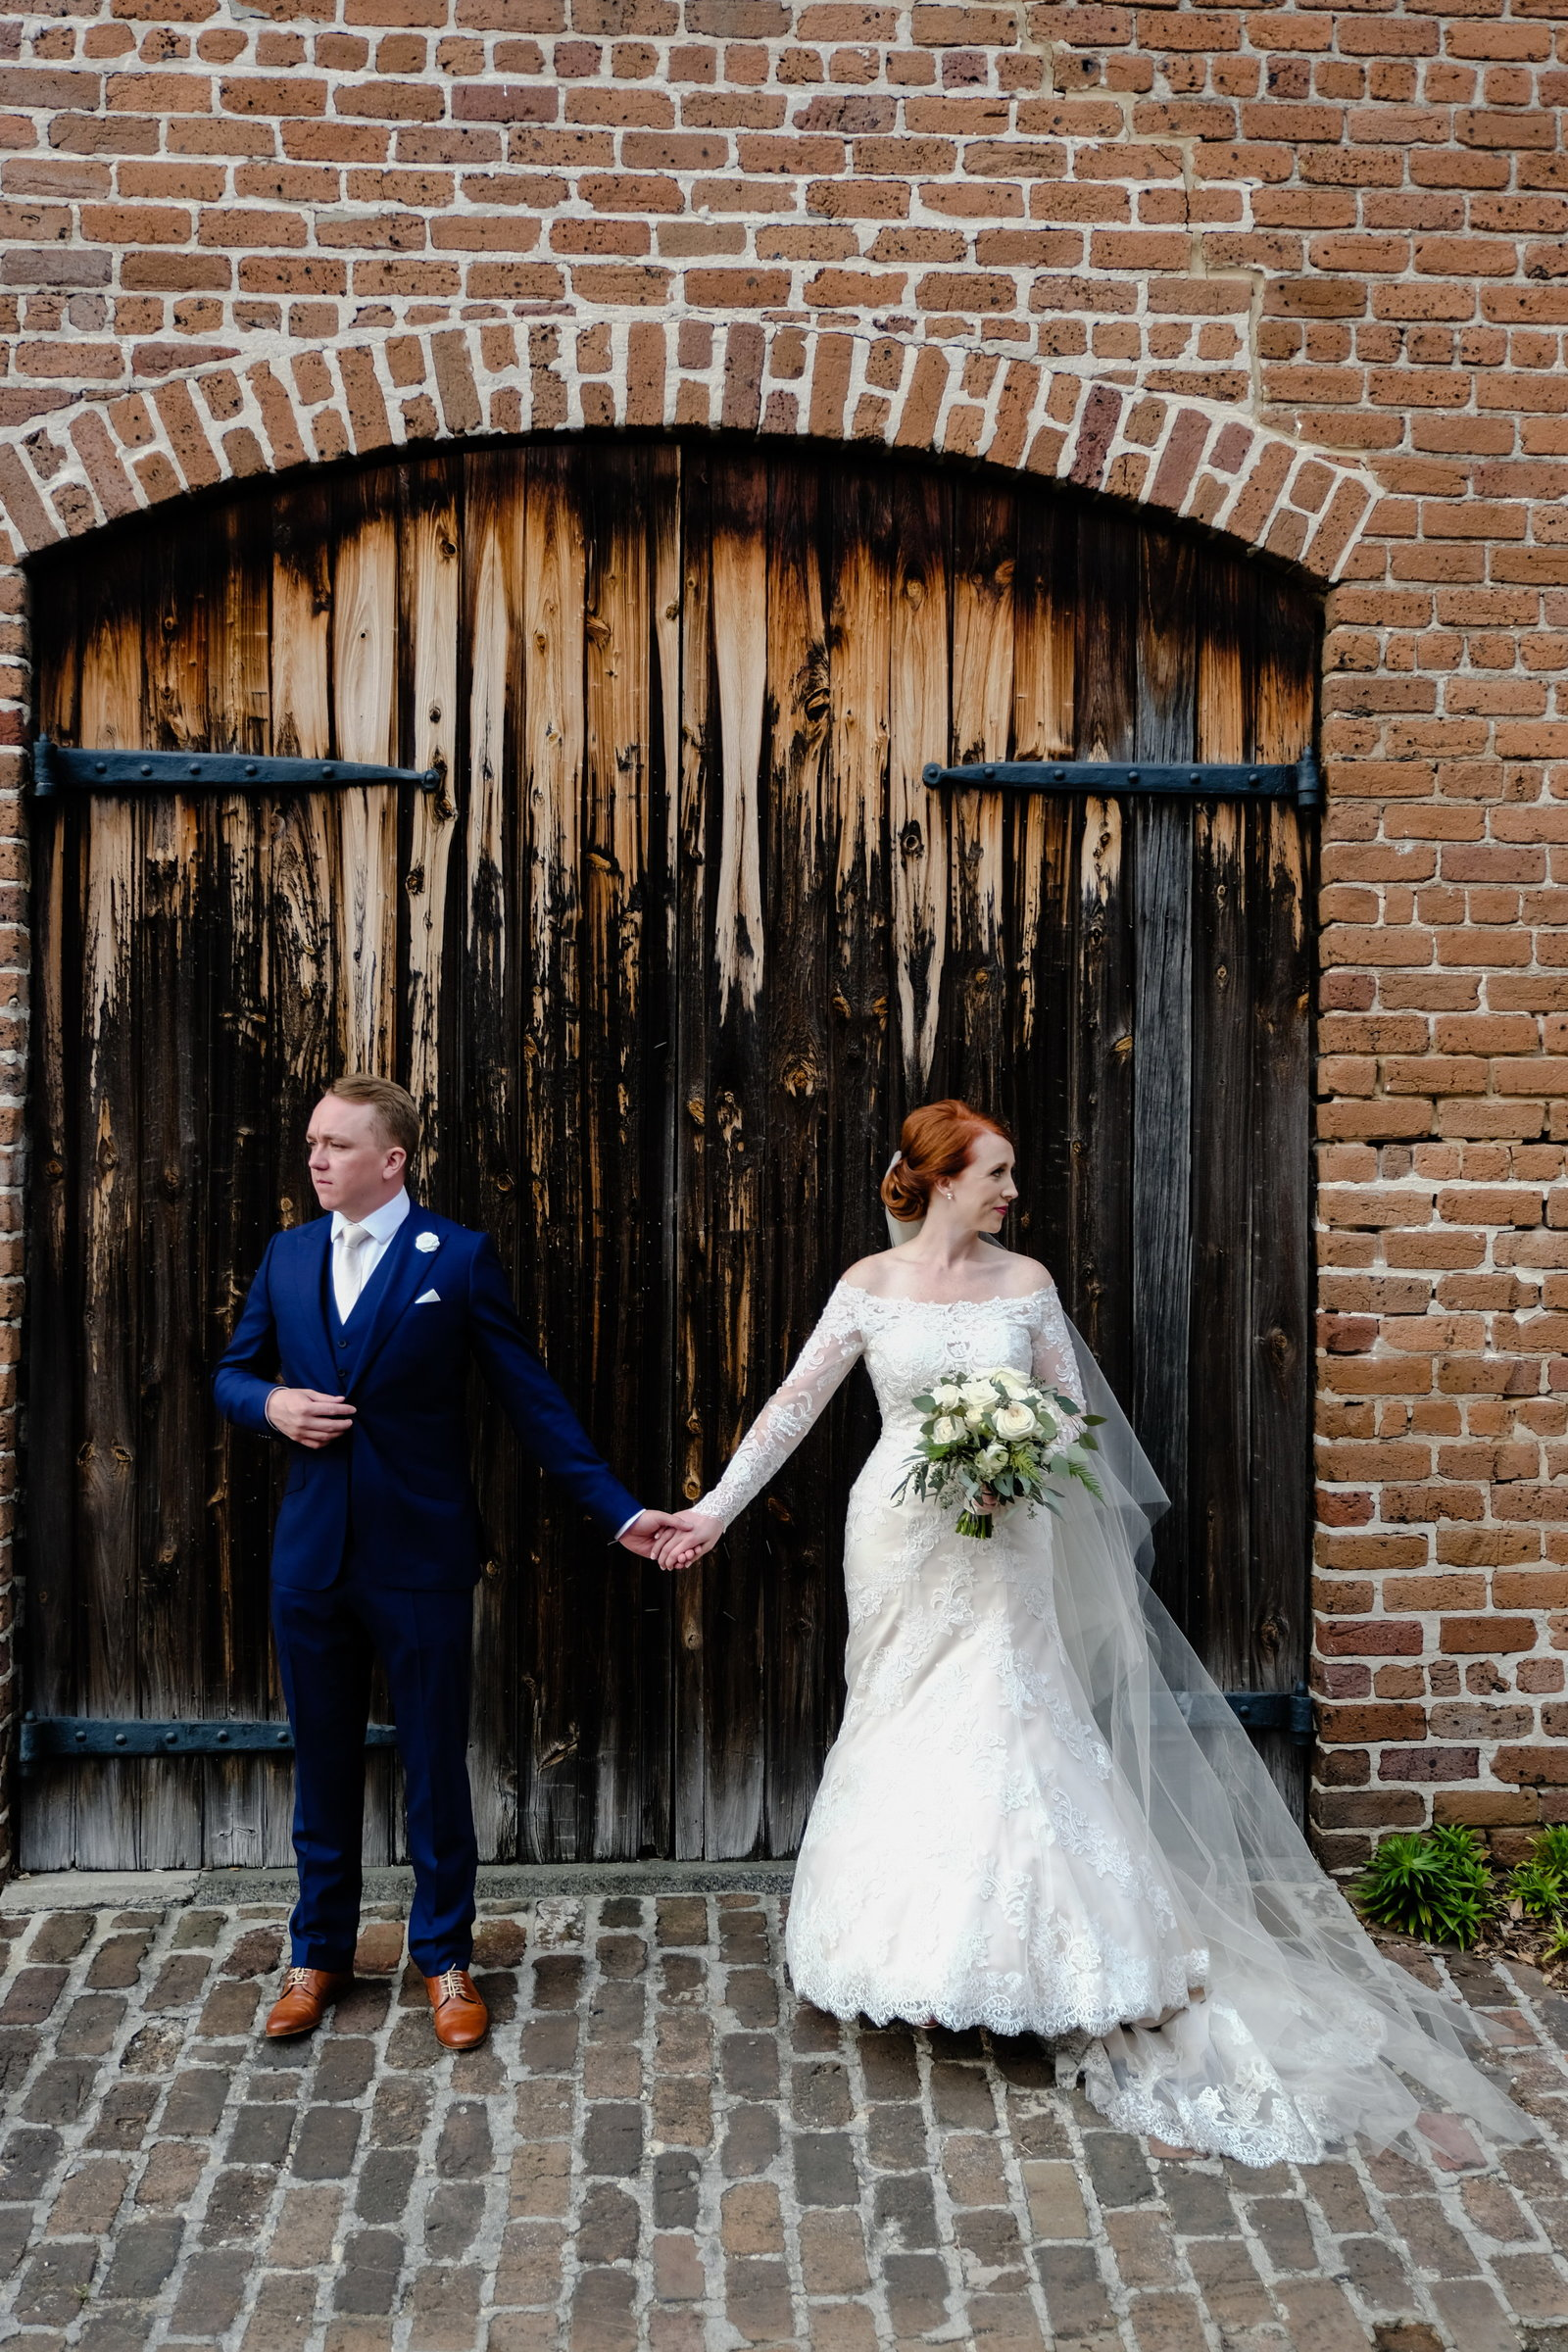 Savannah Wedding Photographer, Thomas & Kathleen, Bobbi Brinkman Photography